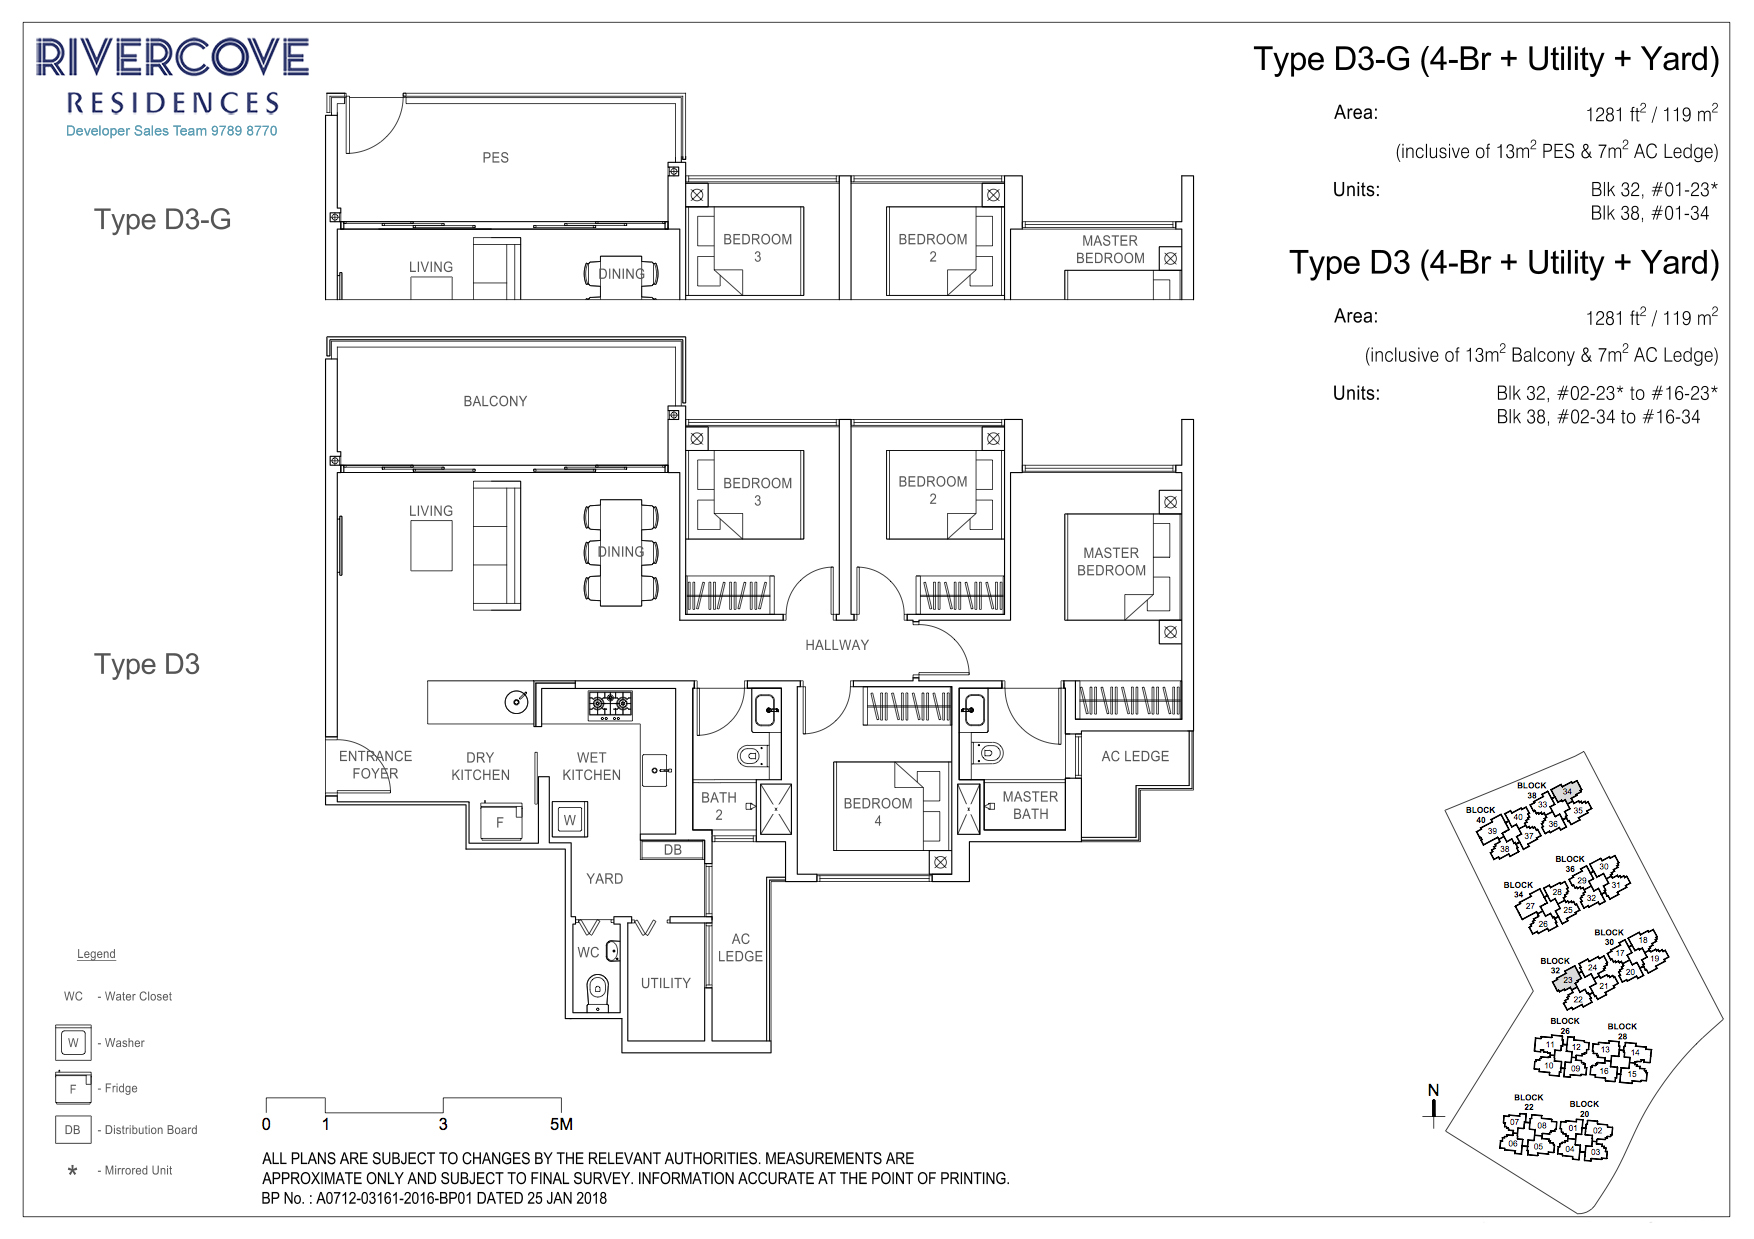 Rivercove Residences Floorplan Type D3